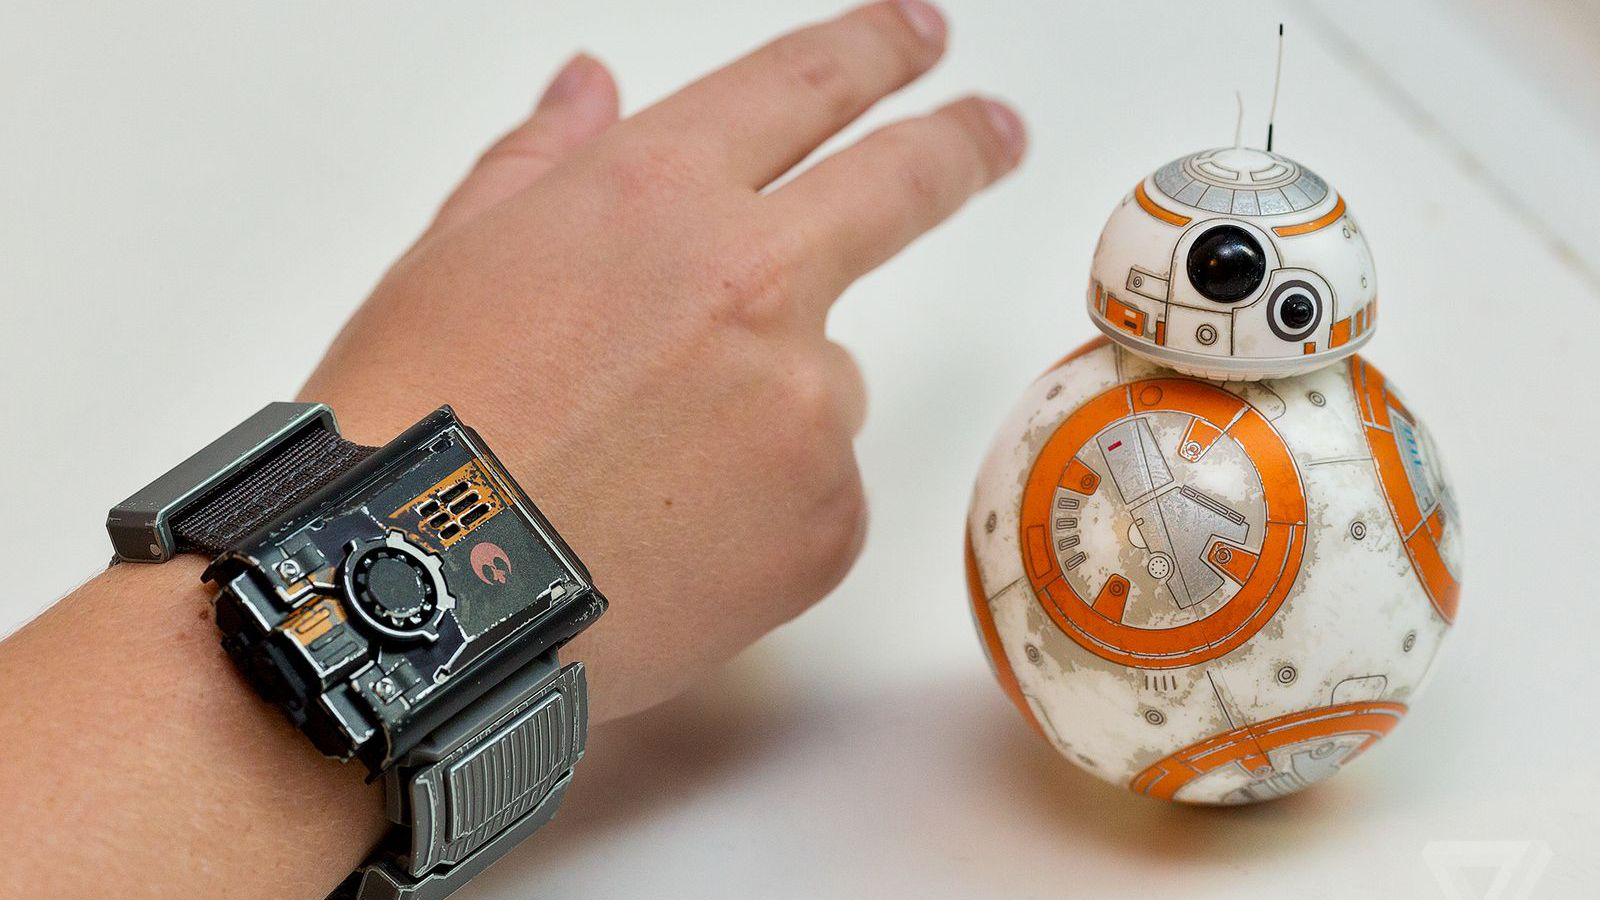 Toys That Are Cool : Sphero s force band wearable can control nearly anything